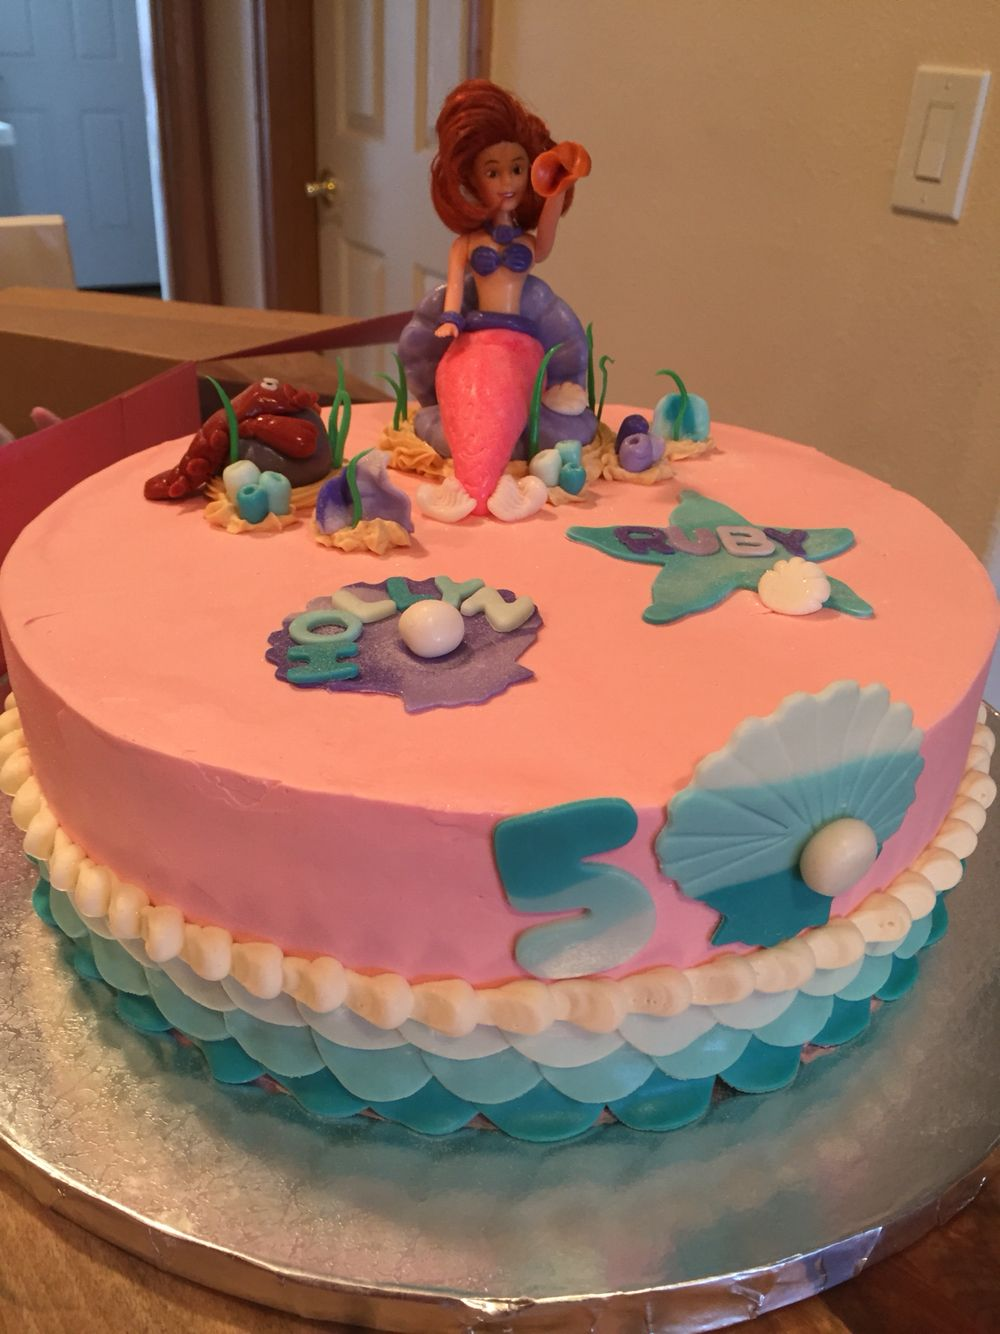 Pleasing Mermaid Birthday Cake For 2 Little Girls Turning 5 Sweetheart Funny Birthday Cards Online Aboleapandamsfinfo